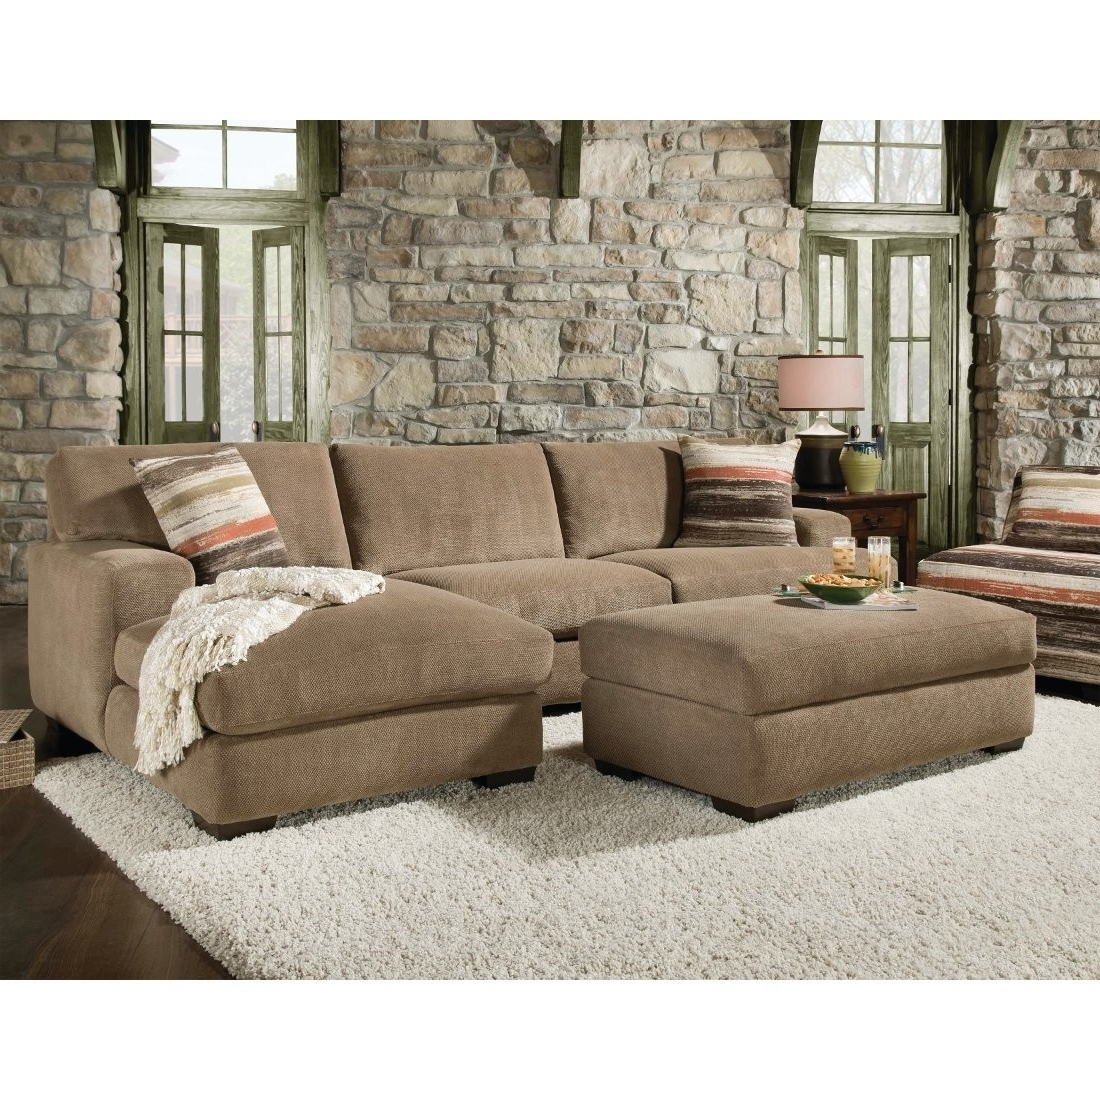 Most Up To Date Beautiful Sectional Sofa With Chaise And Ottoman Pictures In Small Sectional Sofas With Chaise And Ottoman (View 1 of 20)